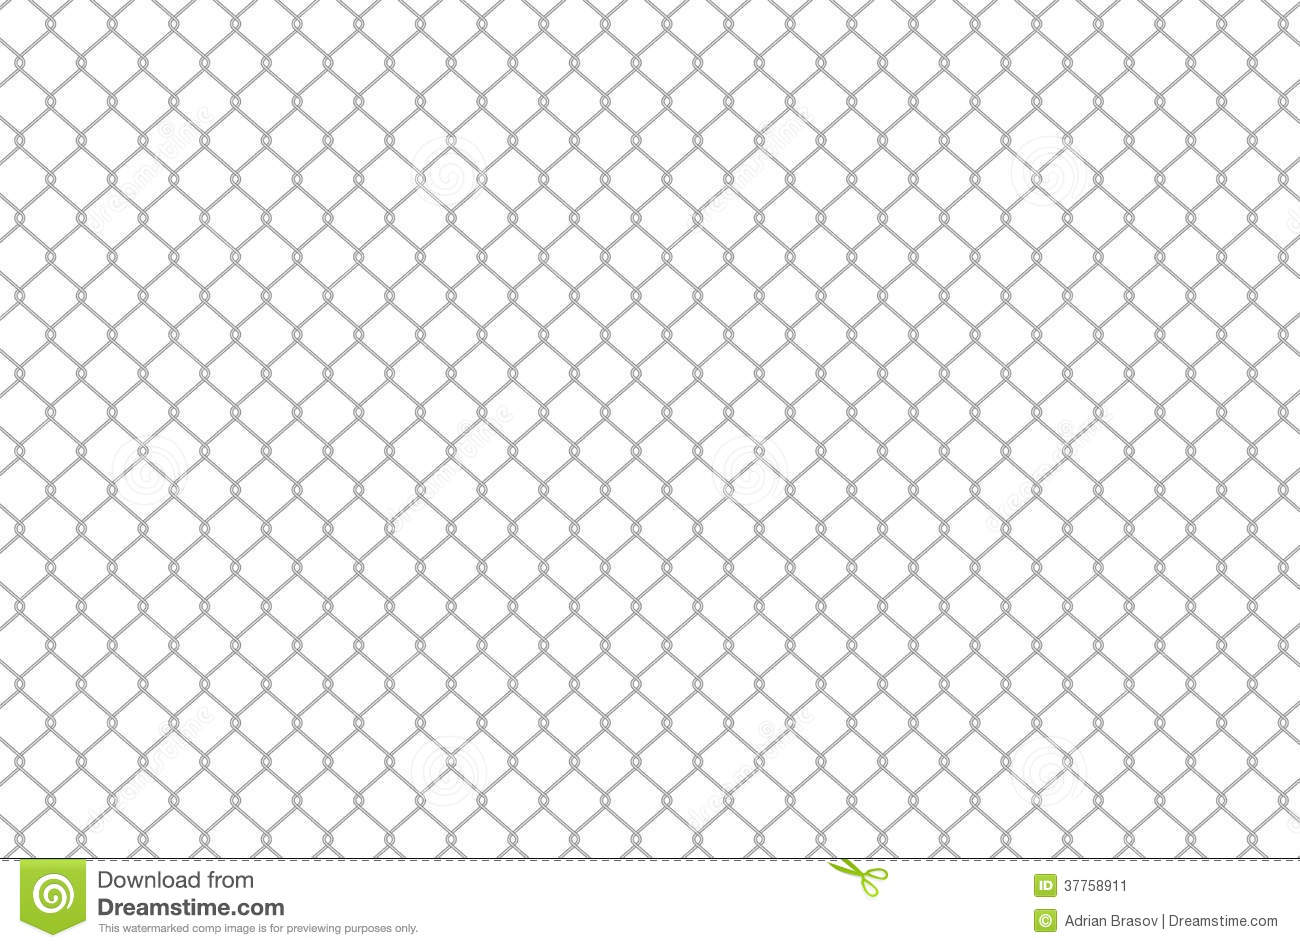 transparent chain link fence texture. Delighful Transparent Transparent Chain Link Fence Texture Transparent Chain Link Fence Texture Intended